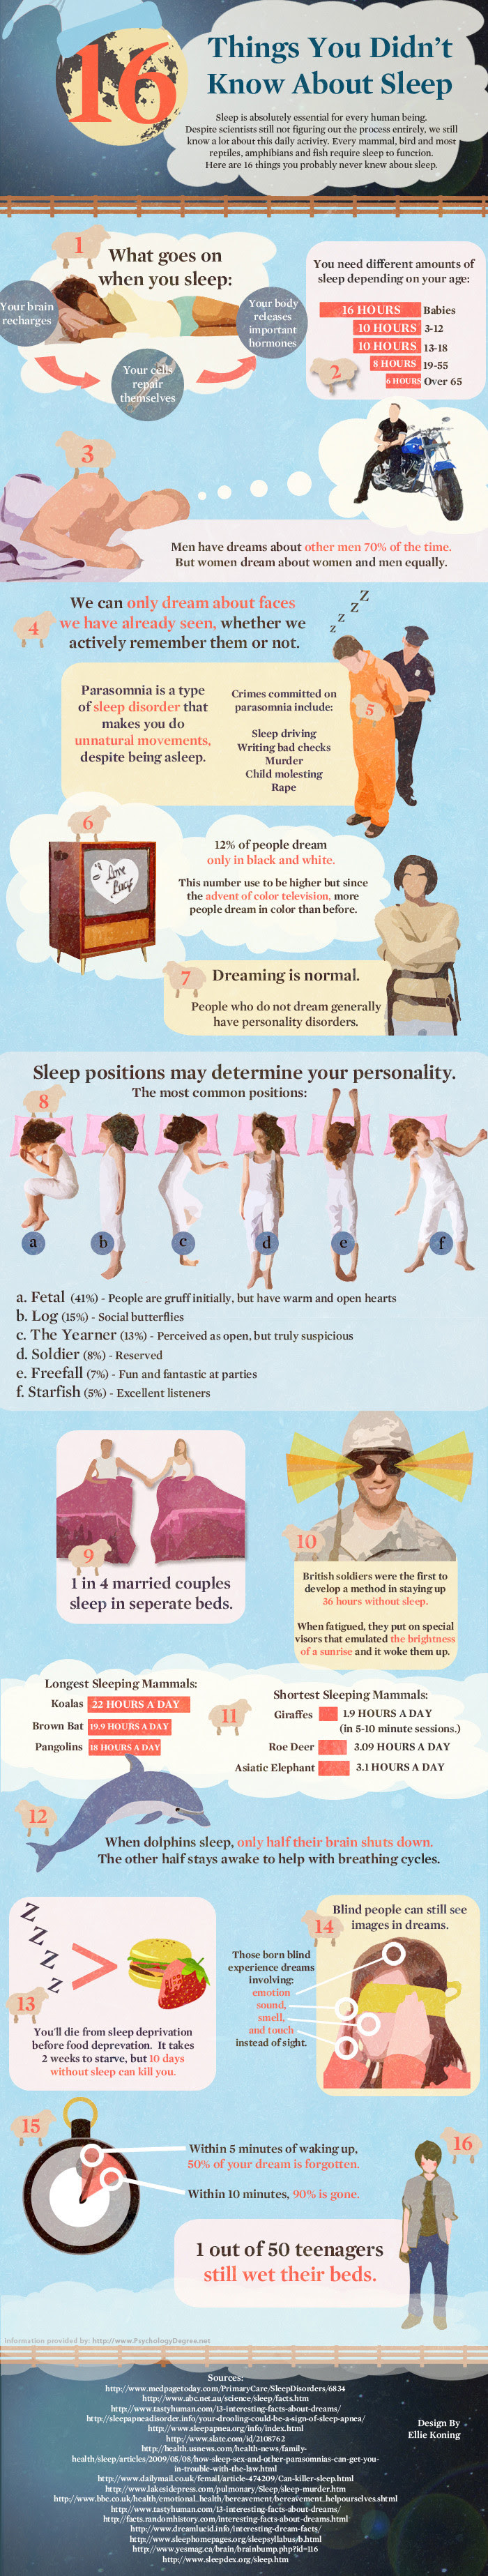 16 Facts About Sleep #infographic